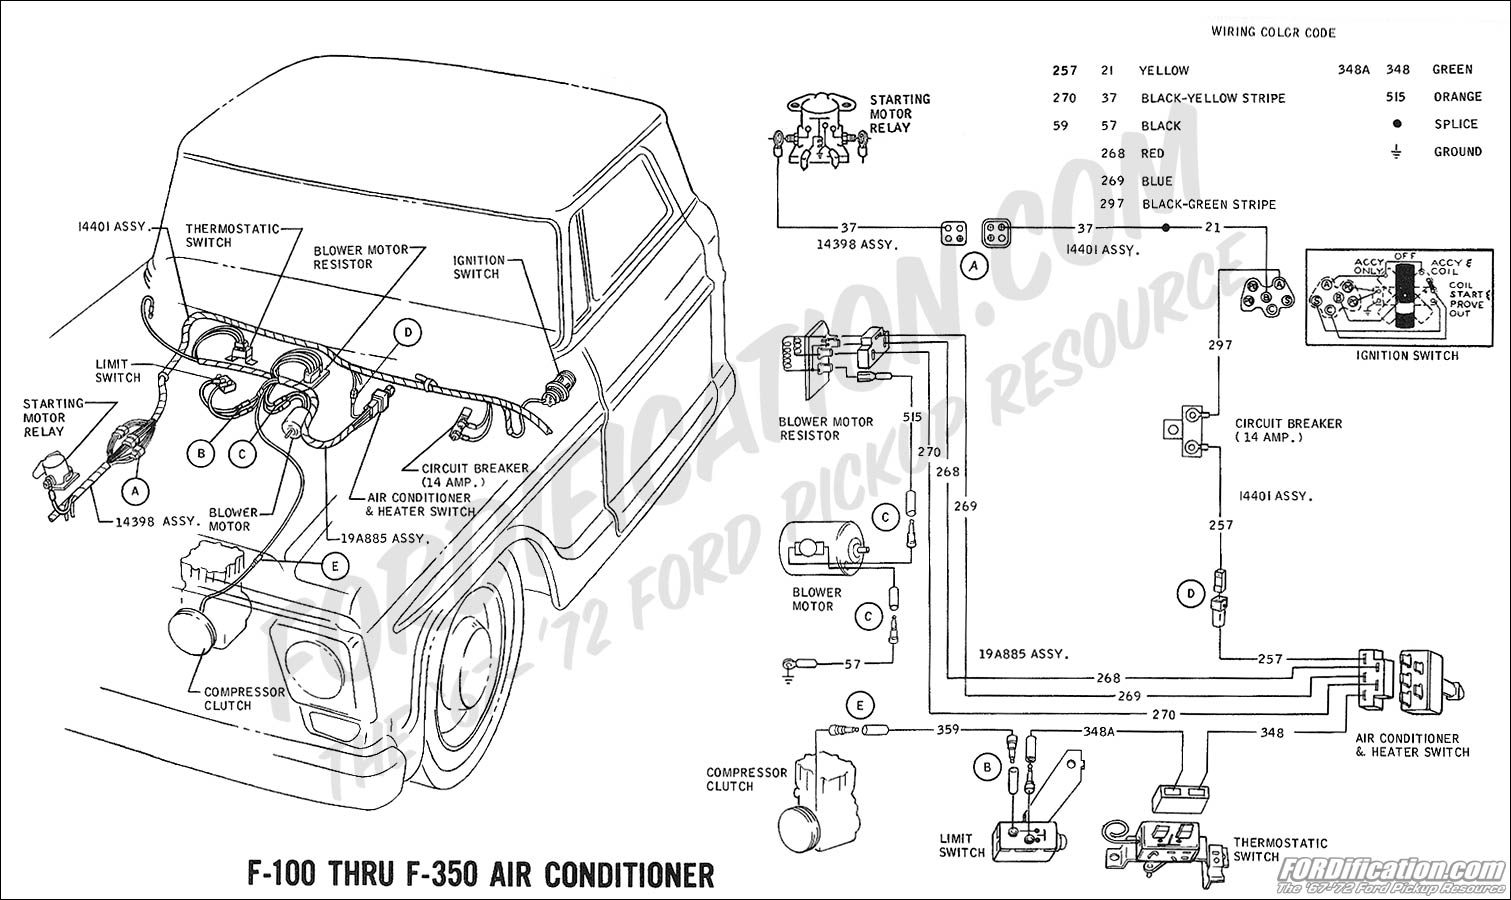 Ford Air Conditioning Wiring Diagram Manual Of 1989 Festiva Ranger Ac Just Data Rh Ag Skiphire Co Uk Fiesta